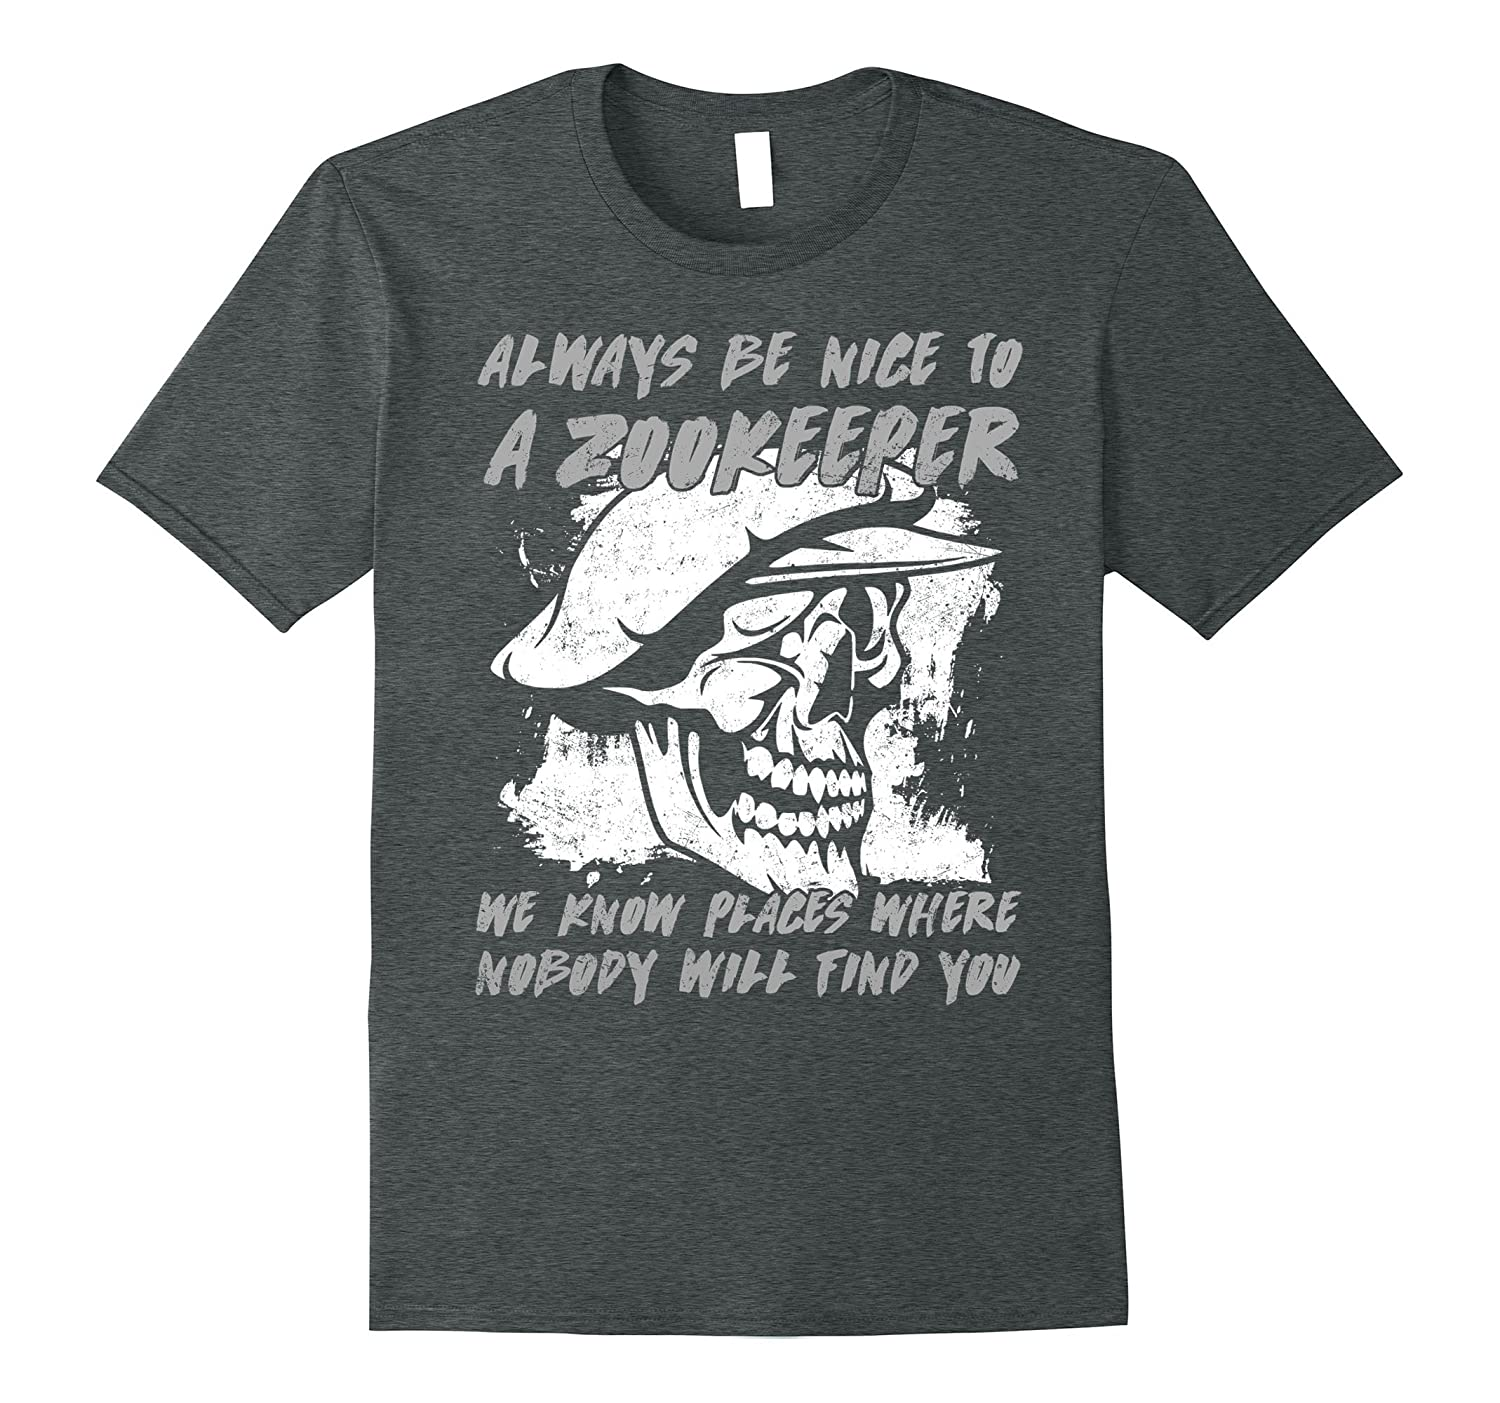 A Zookeeper Knows Places Where Nobody Will Find You T-shirt